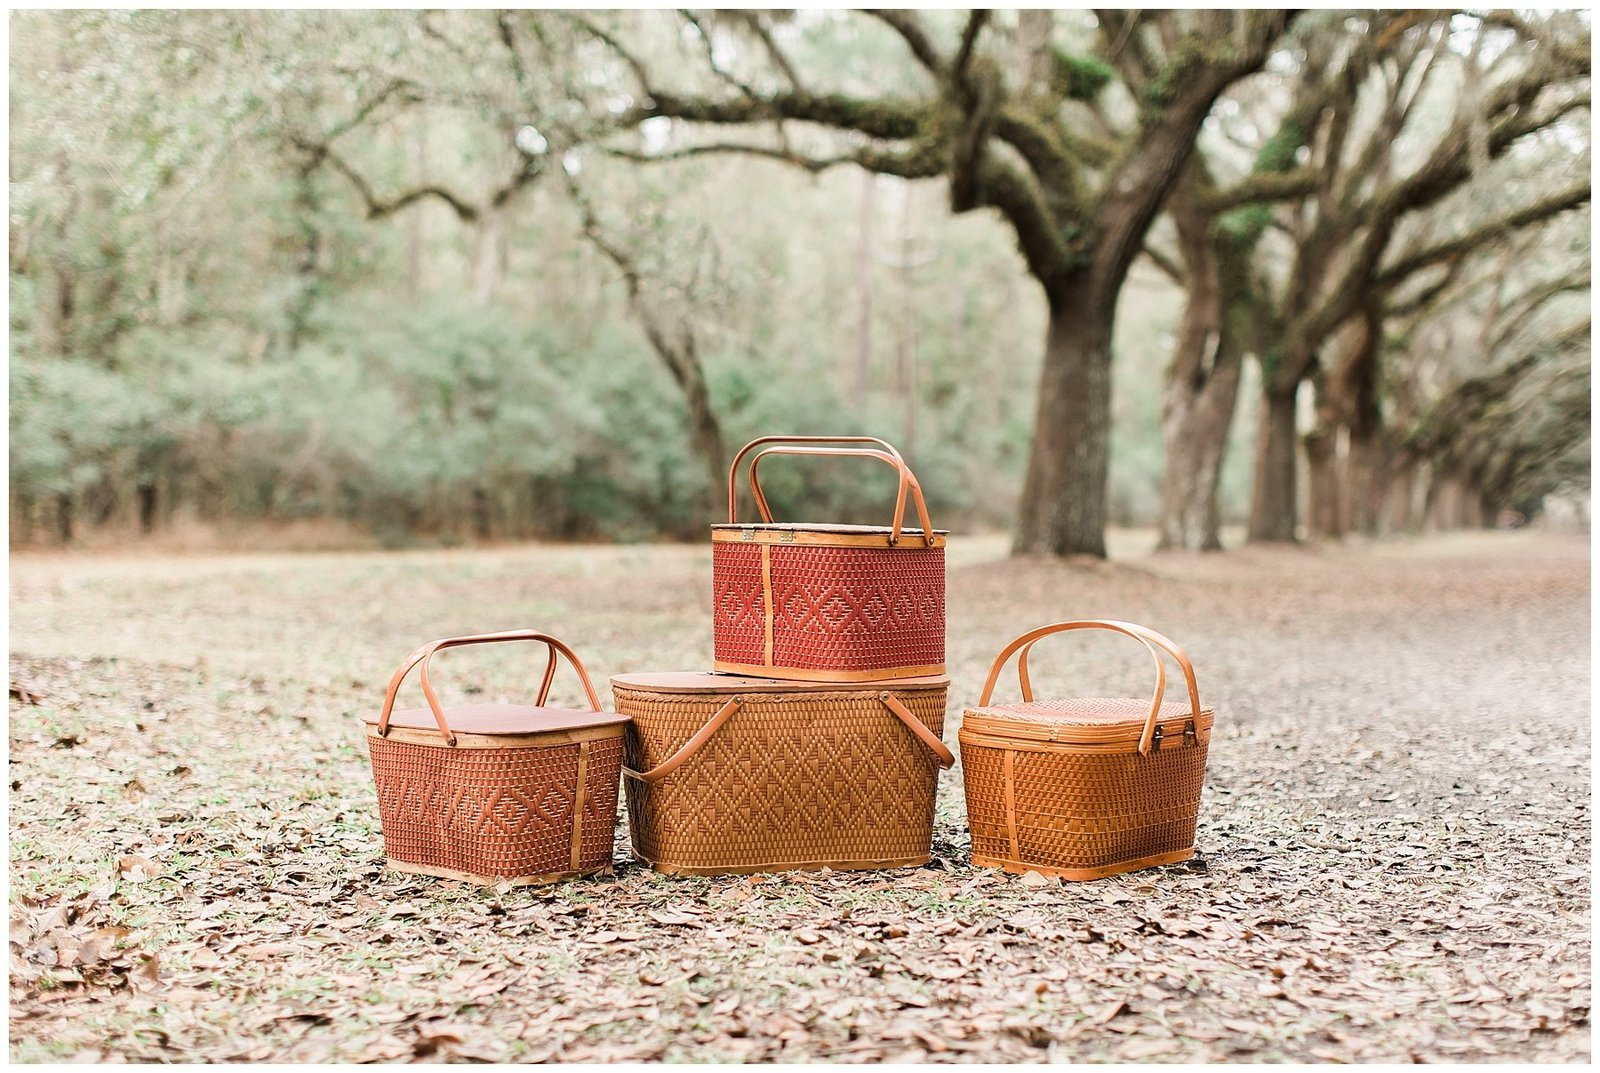 Vintage baskets under old oak trees.